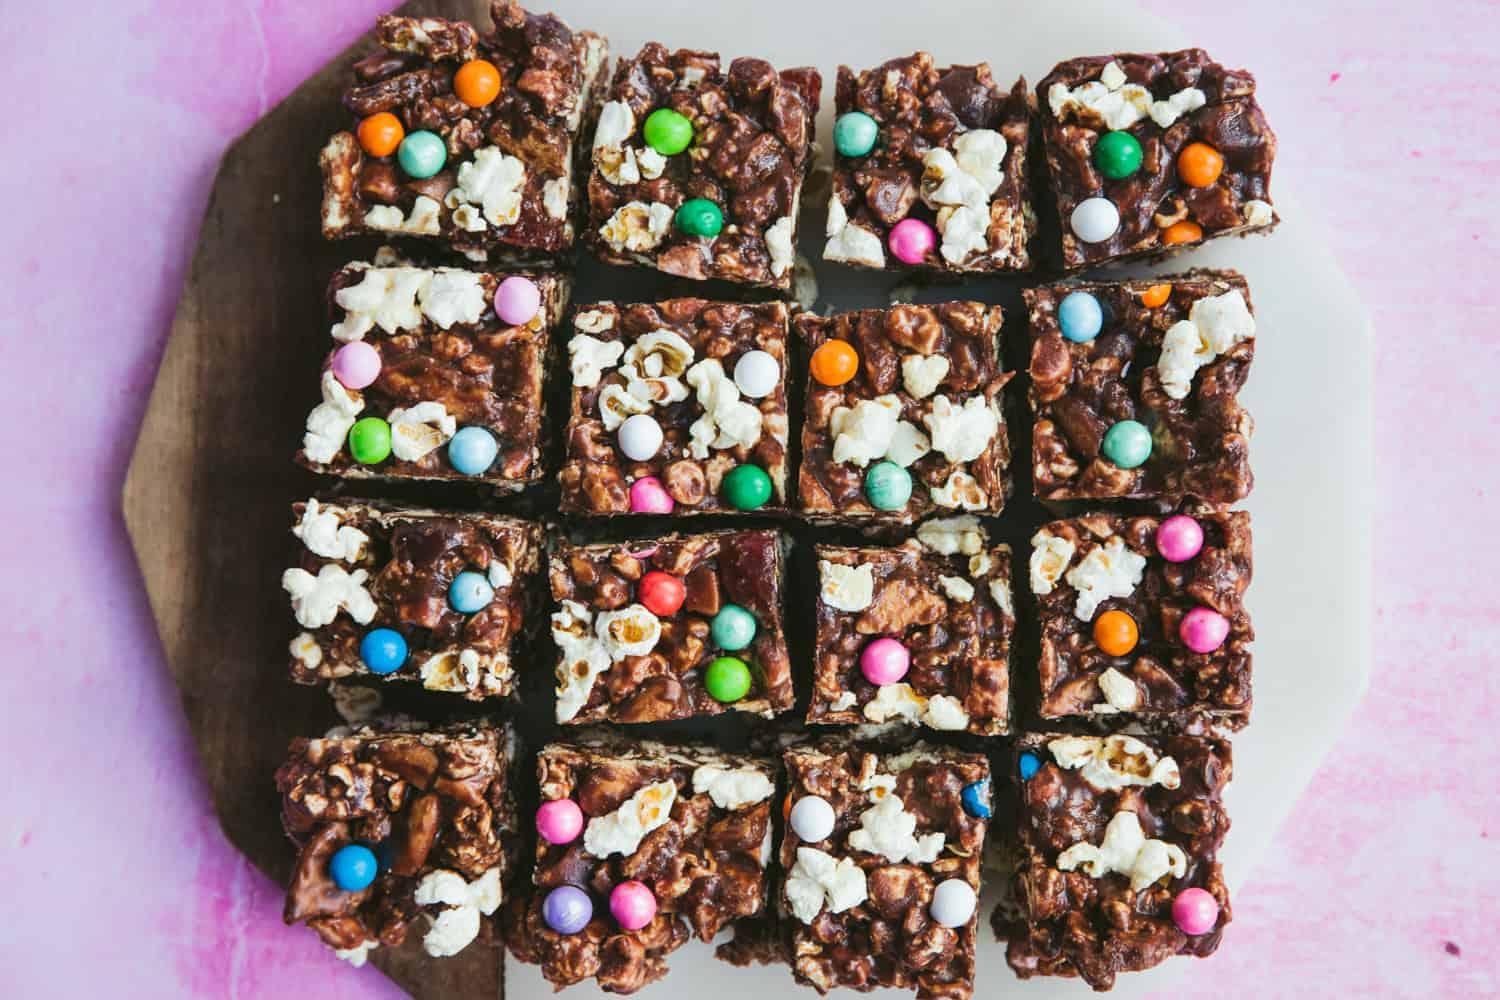 16 squares of Popcorn Rocky road on a pink background.